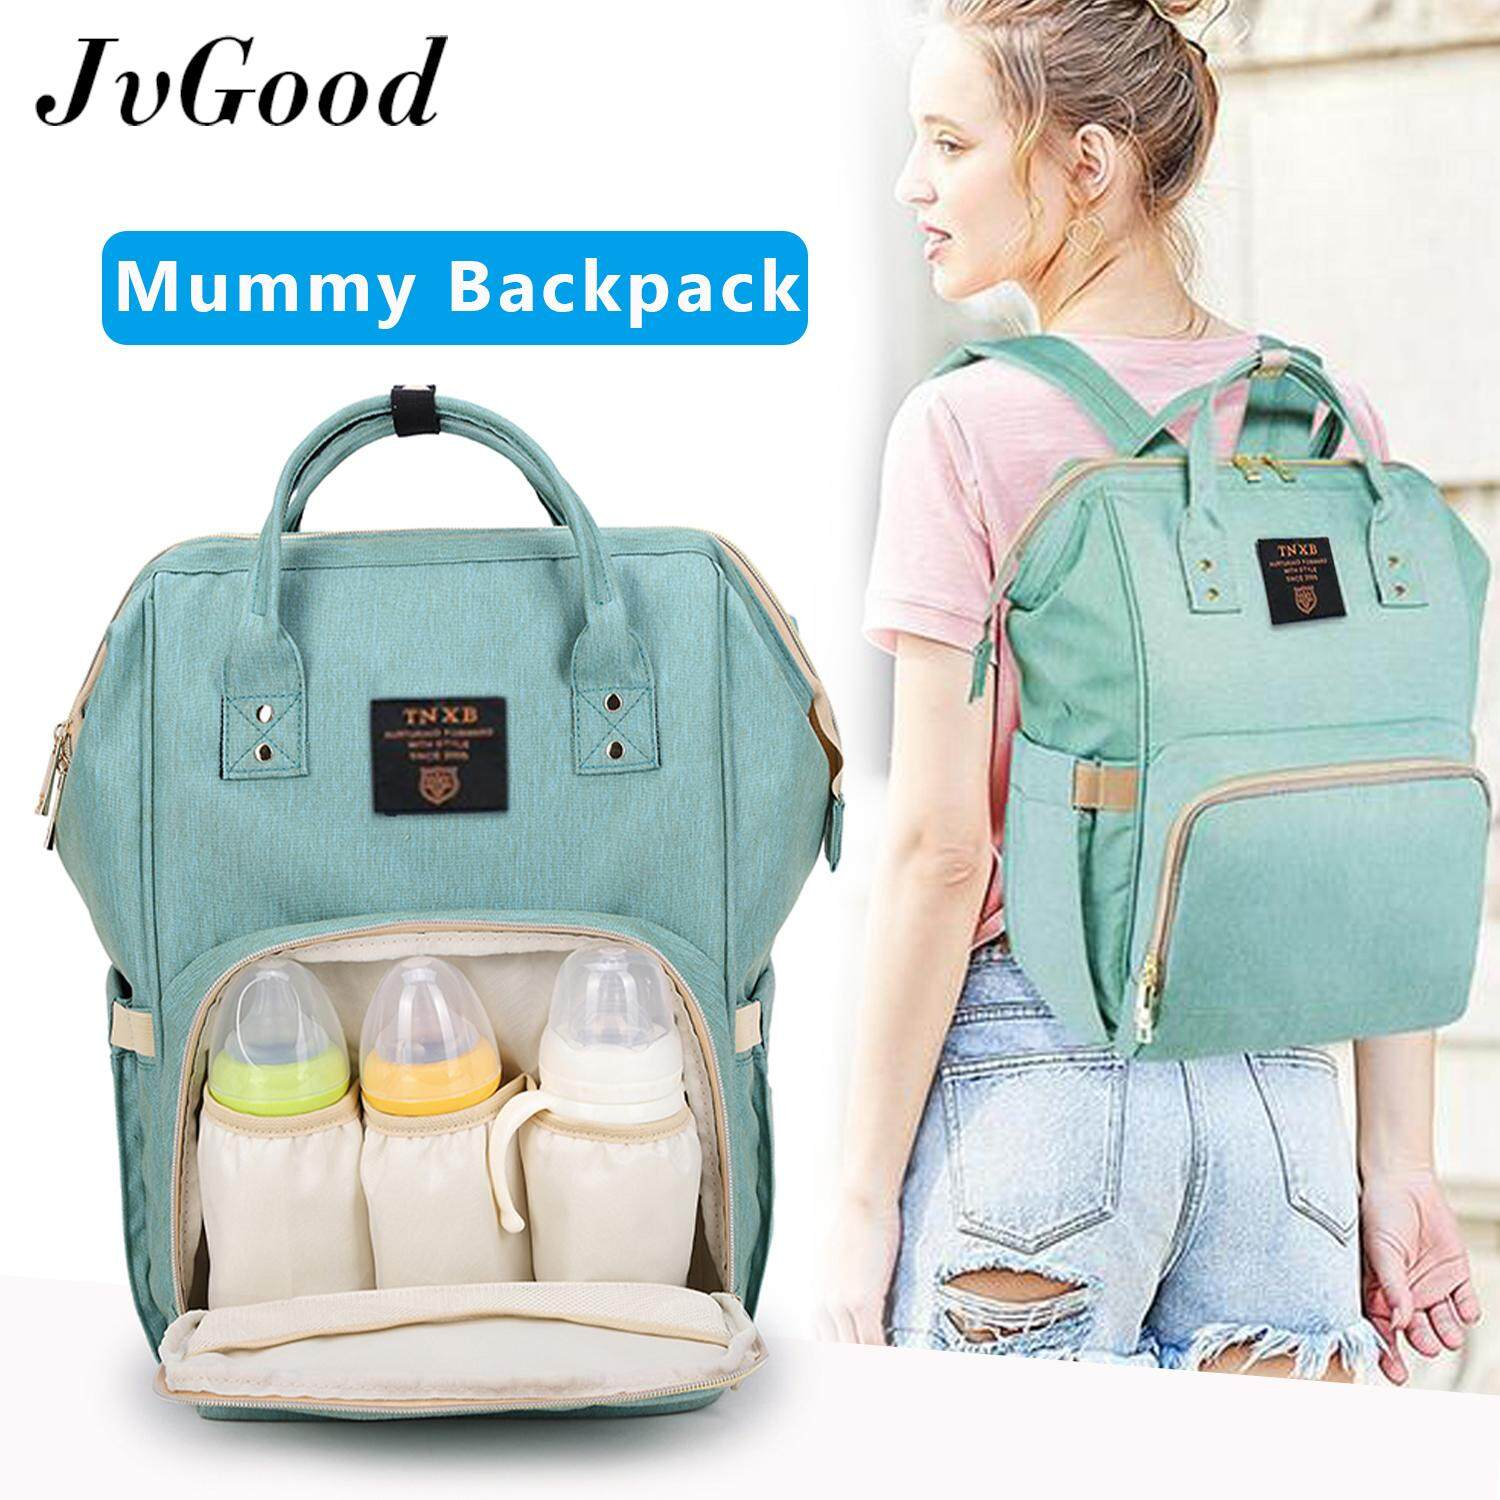 JvGood กระเป๋าคุณแม่ Fashion Multifunctional Mummy Backpack Unti-dirty Maternity Nappy Diaper Bag Large Capacity Nursing Mother bag Travel Backpack